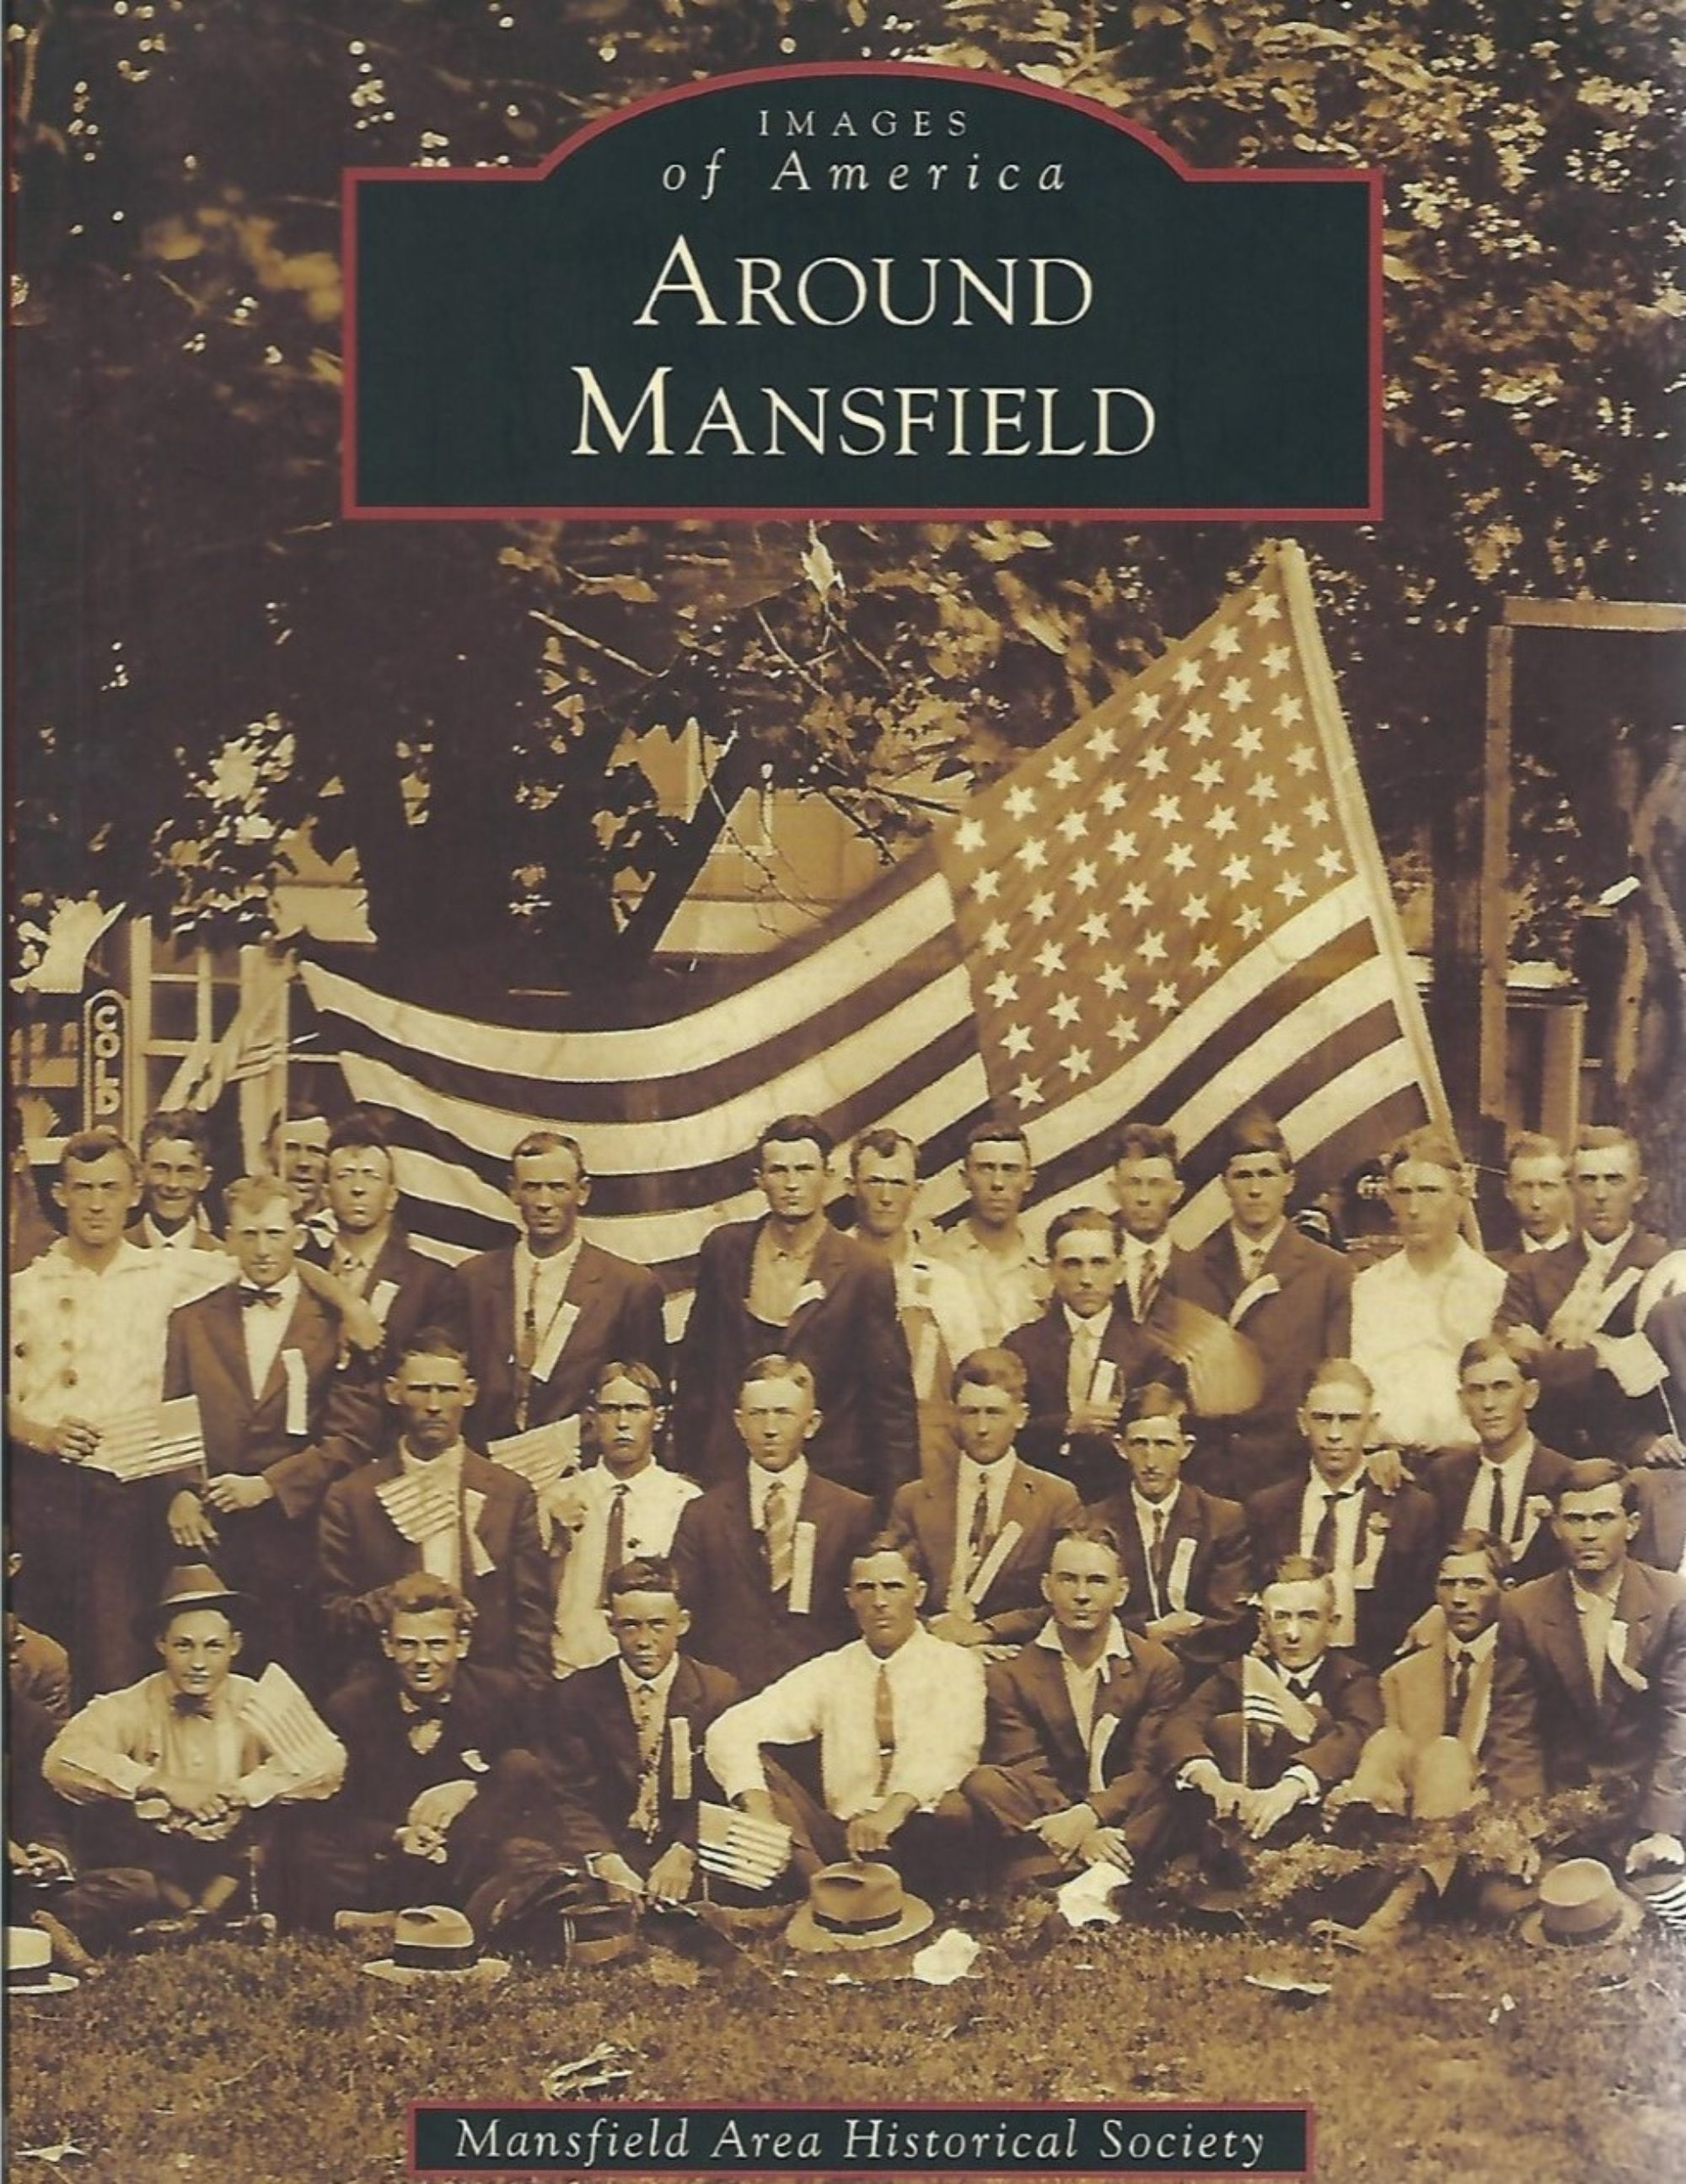 Mansfield Area Historical Society